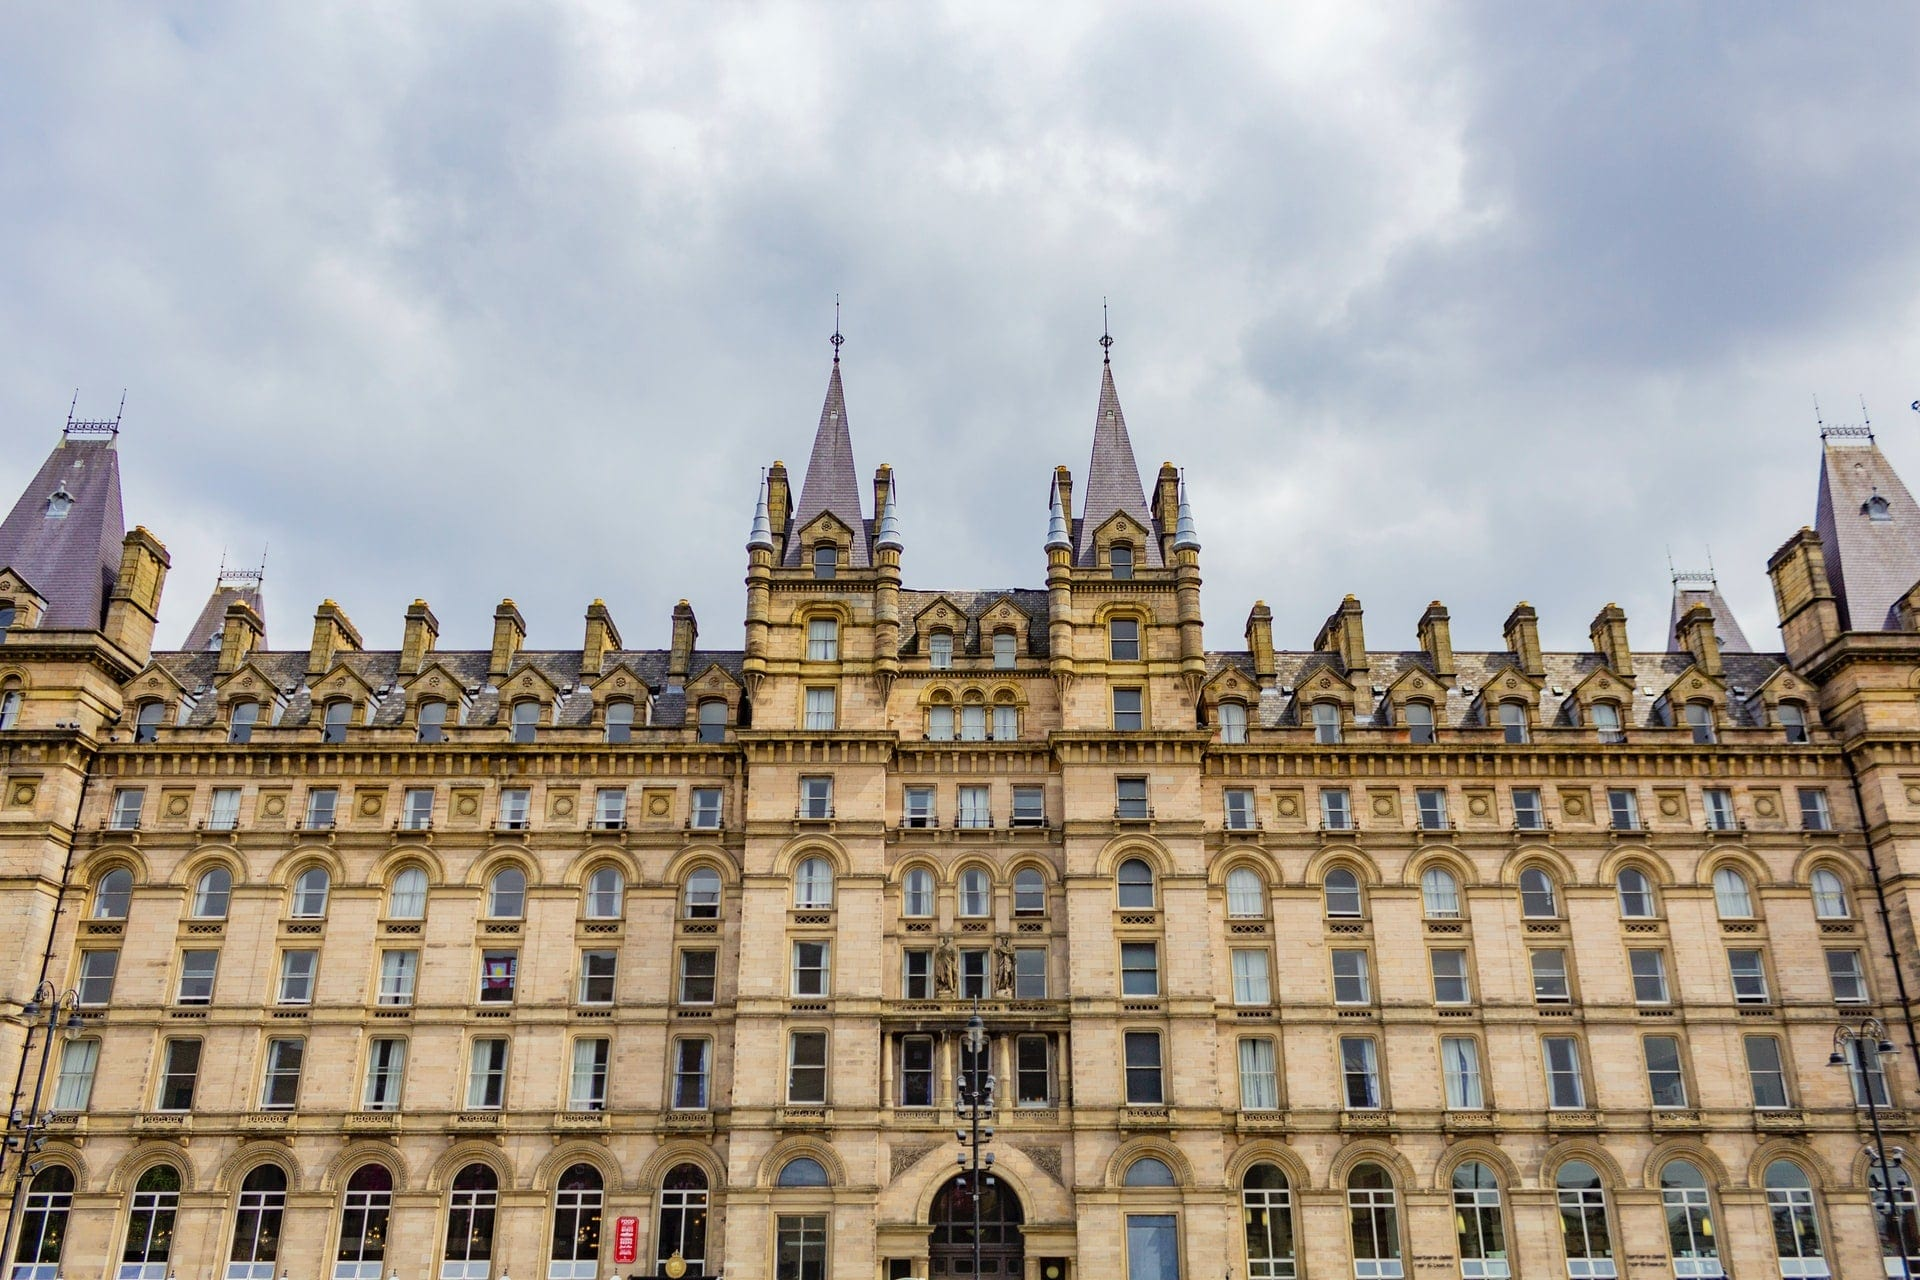 old-historic-building-in-liverpool-england